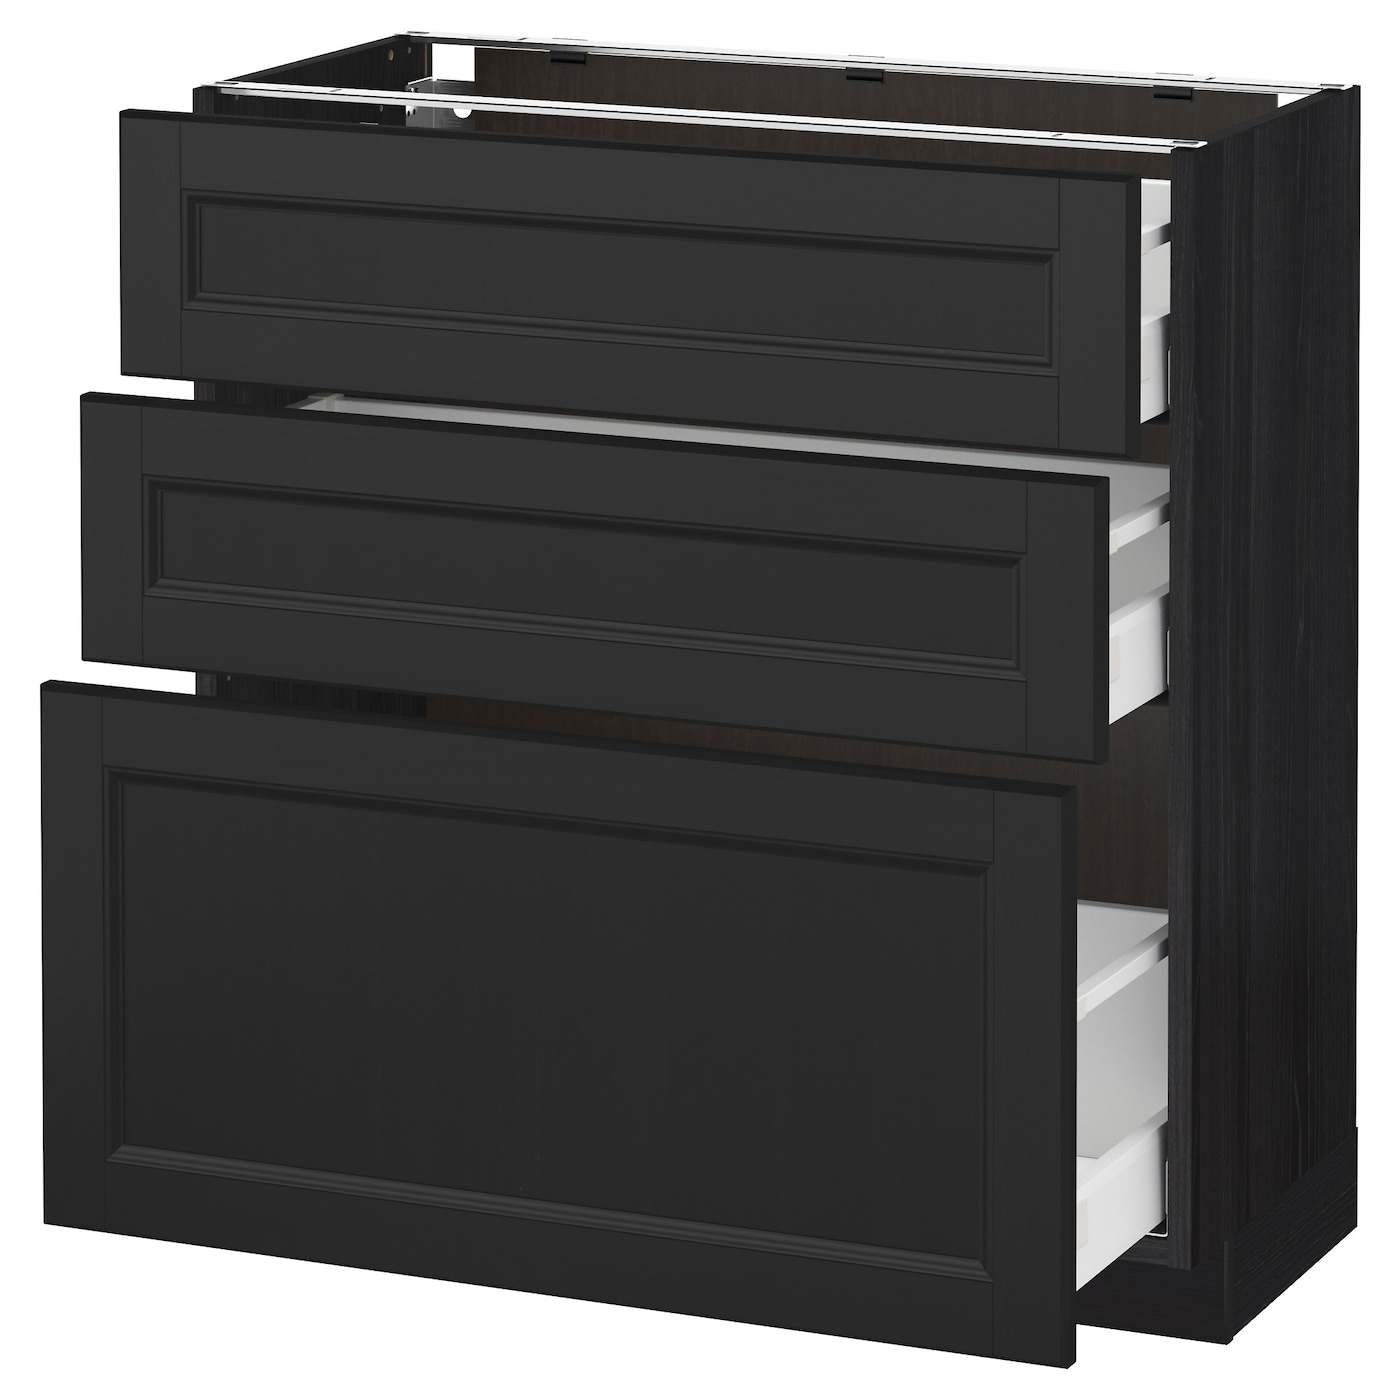 Metod Maximera Base Cabinet With 3 Drawers Black Laxarby Black Brown 80x37 Cm Ikea